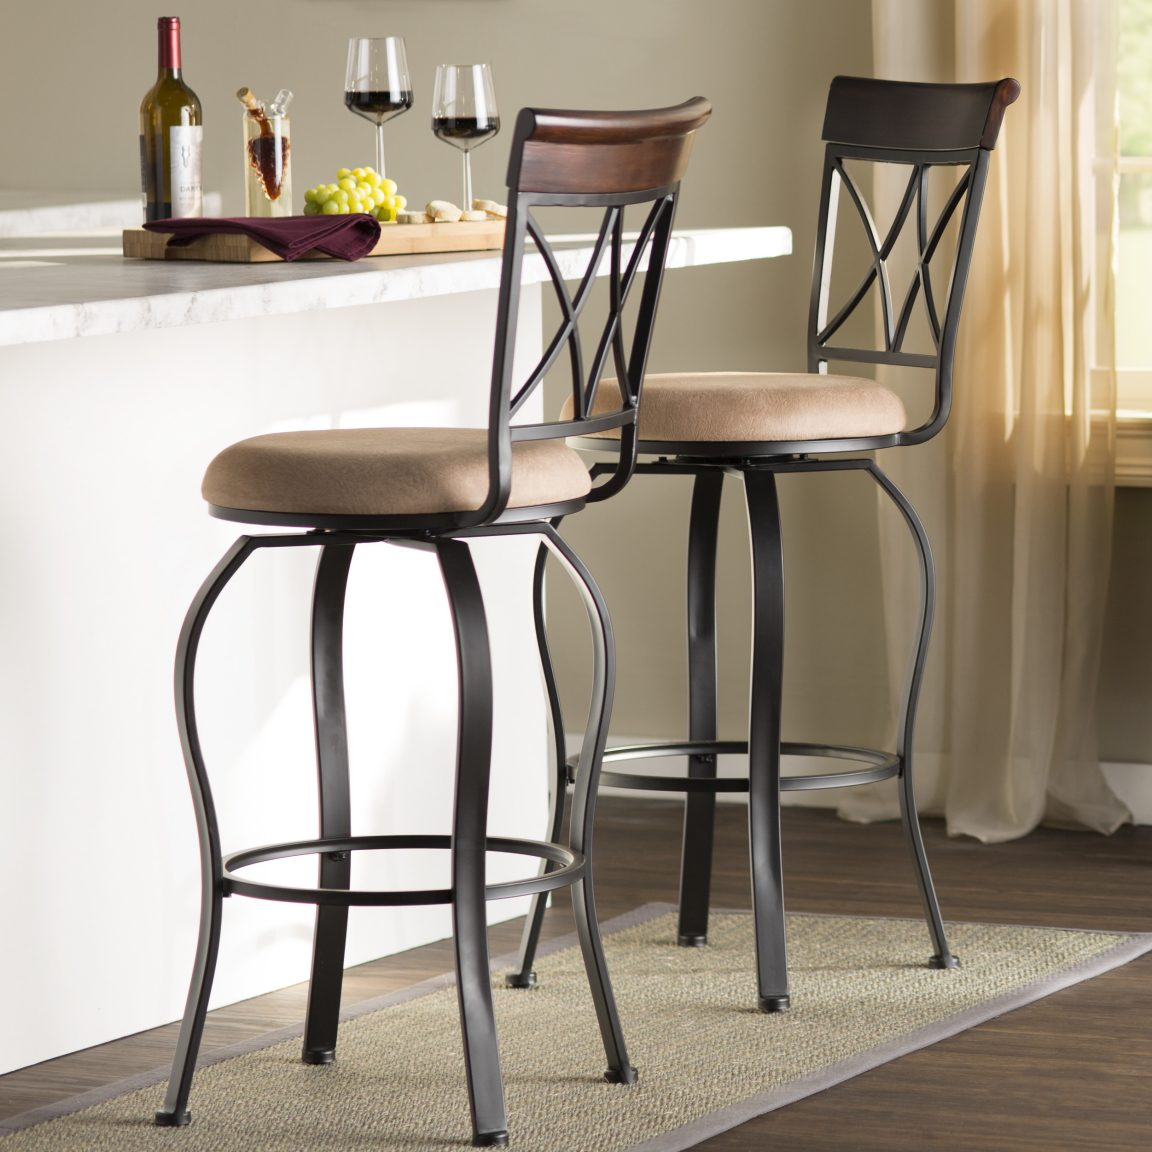 arteriors bar stools kade accent table gracious toreralia gorgeous alexander wrought iron stool mathews kitchen with backs outdoor swivel solid cherry furniture dining wicker